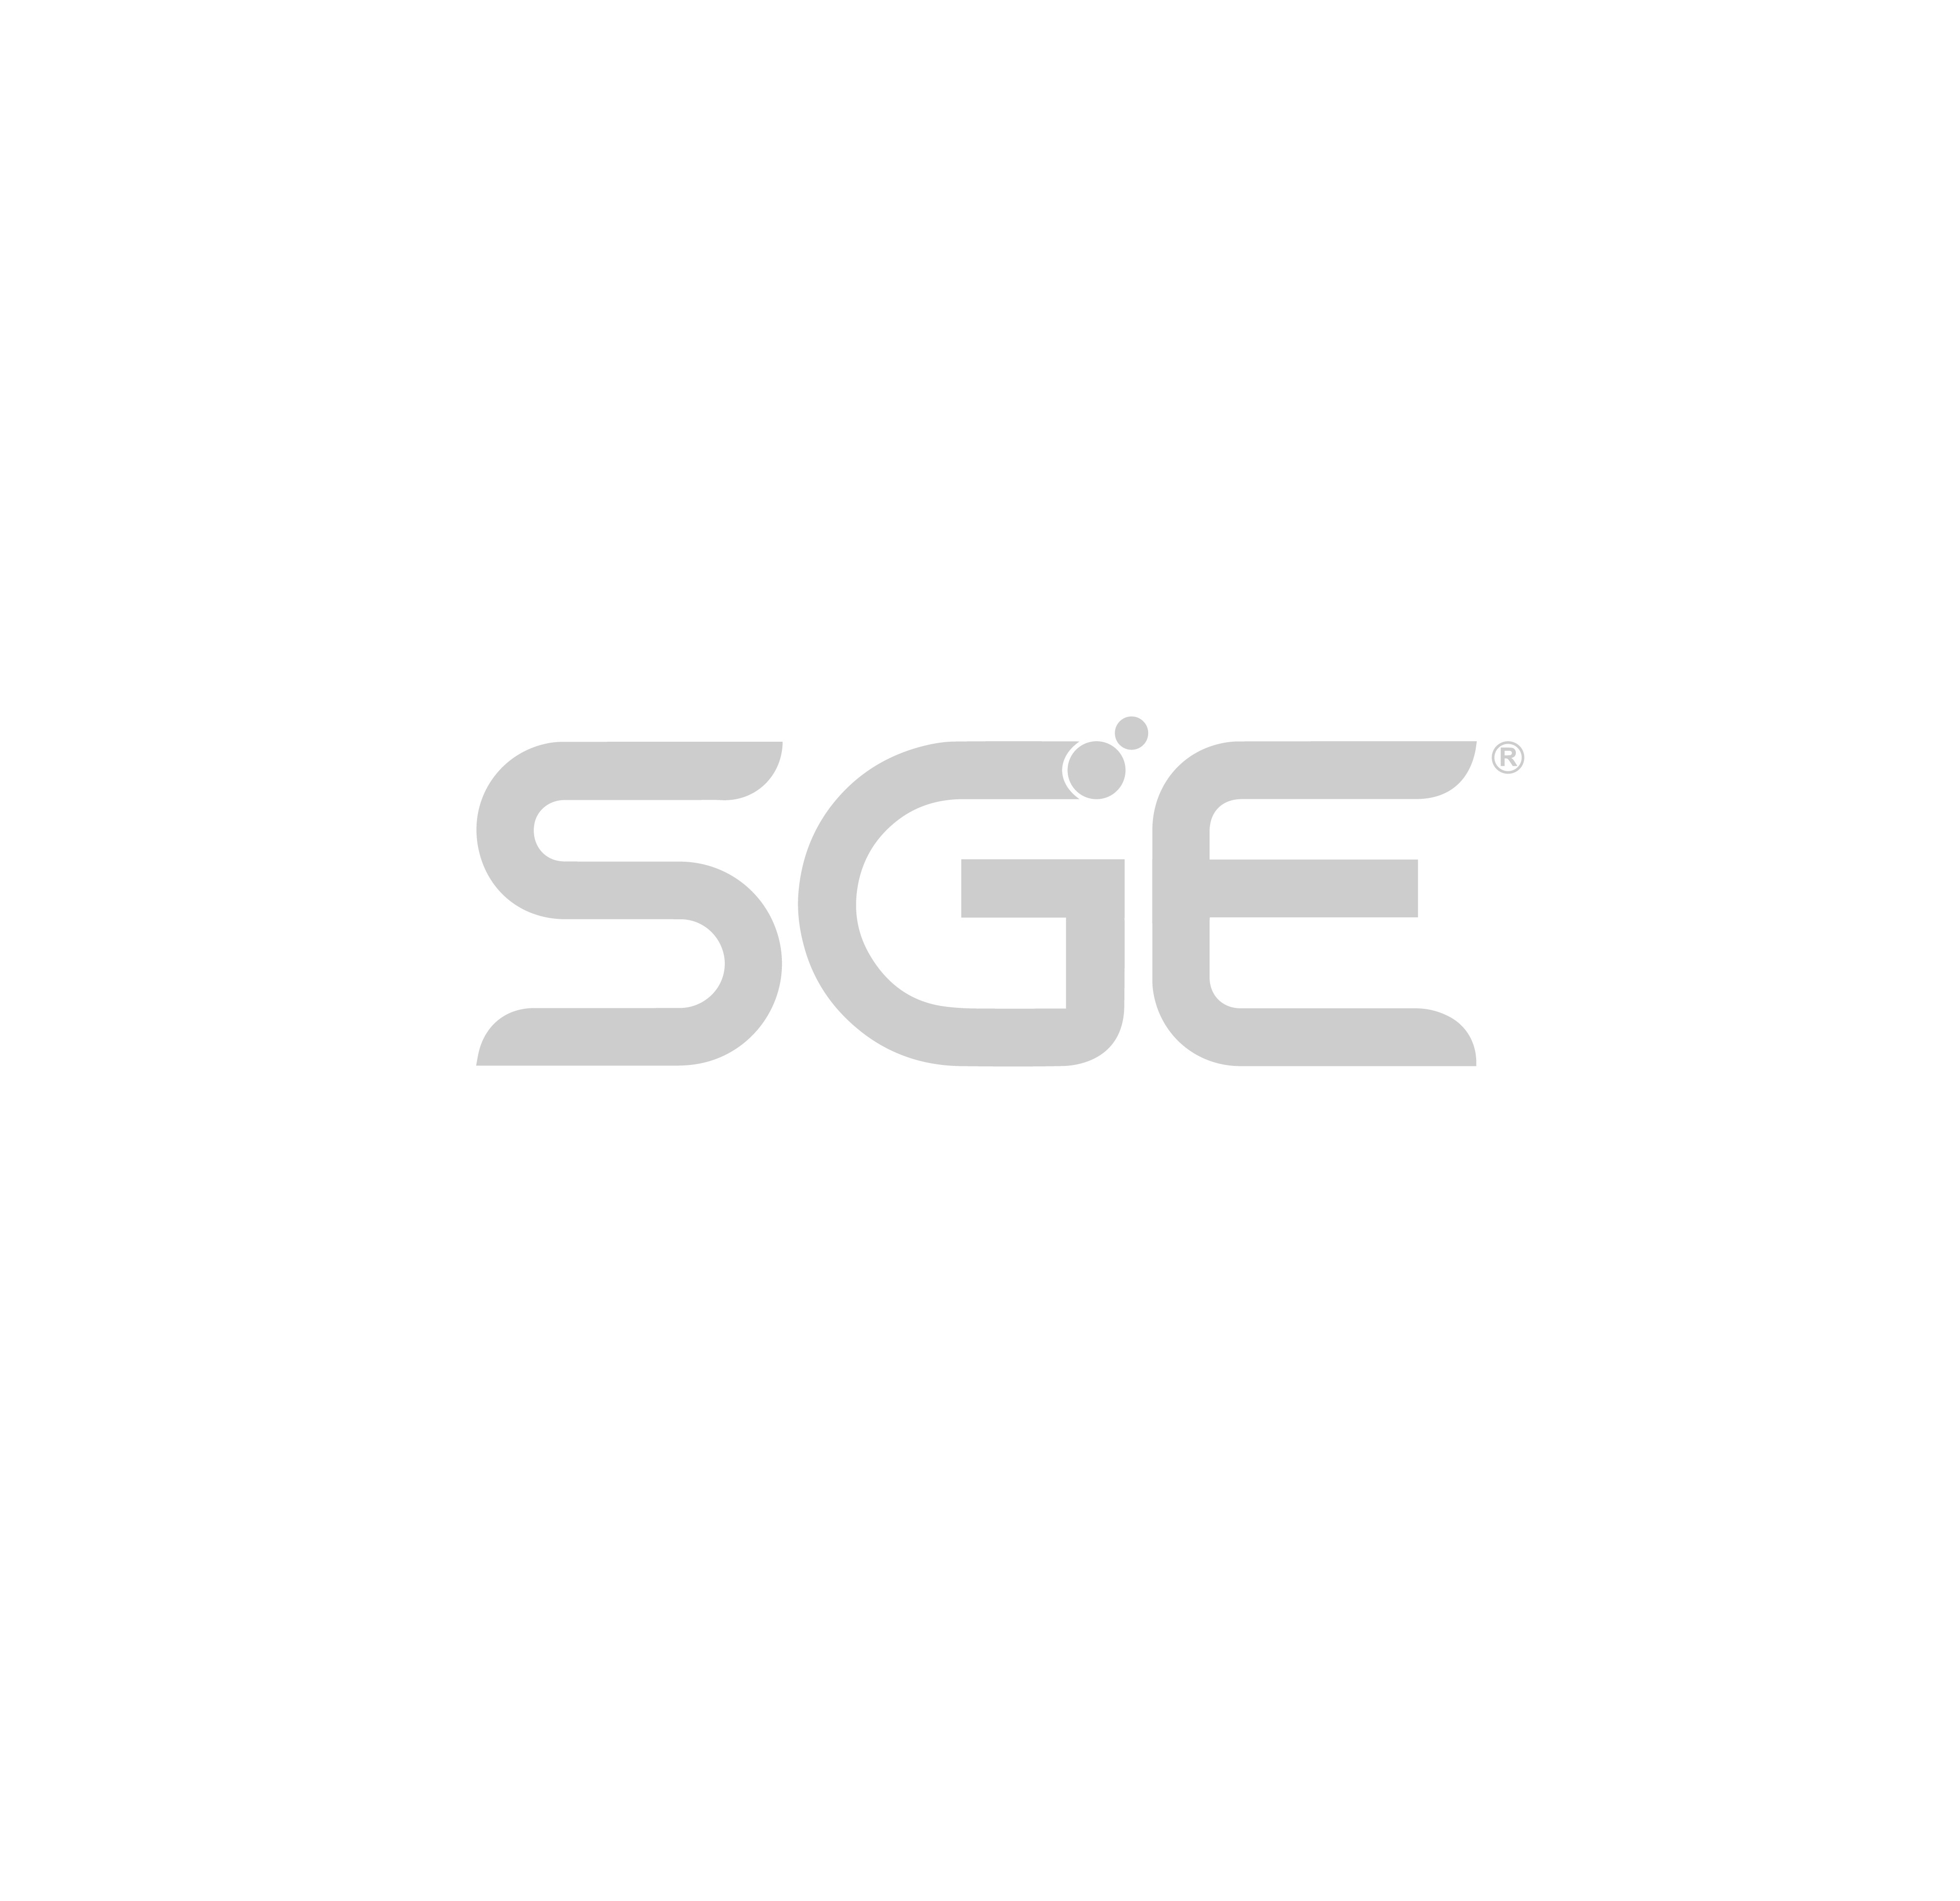 Led Smd Para Backlight Tv Pantalla Led 4.0Mm*2.0Mm 0.5W 6V 150Ma. 40-45Lm 15000K-20000K